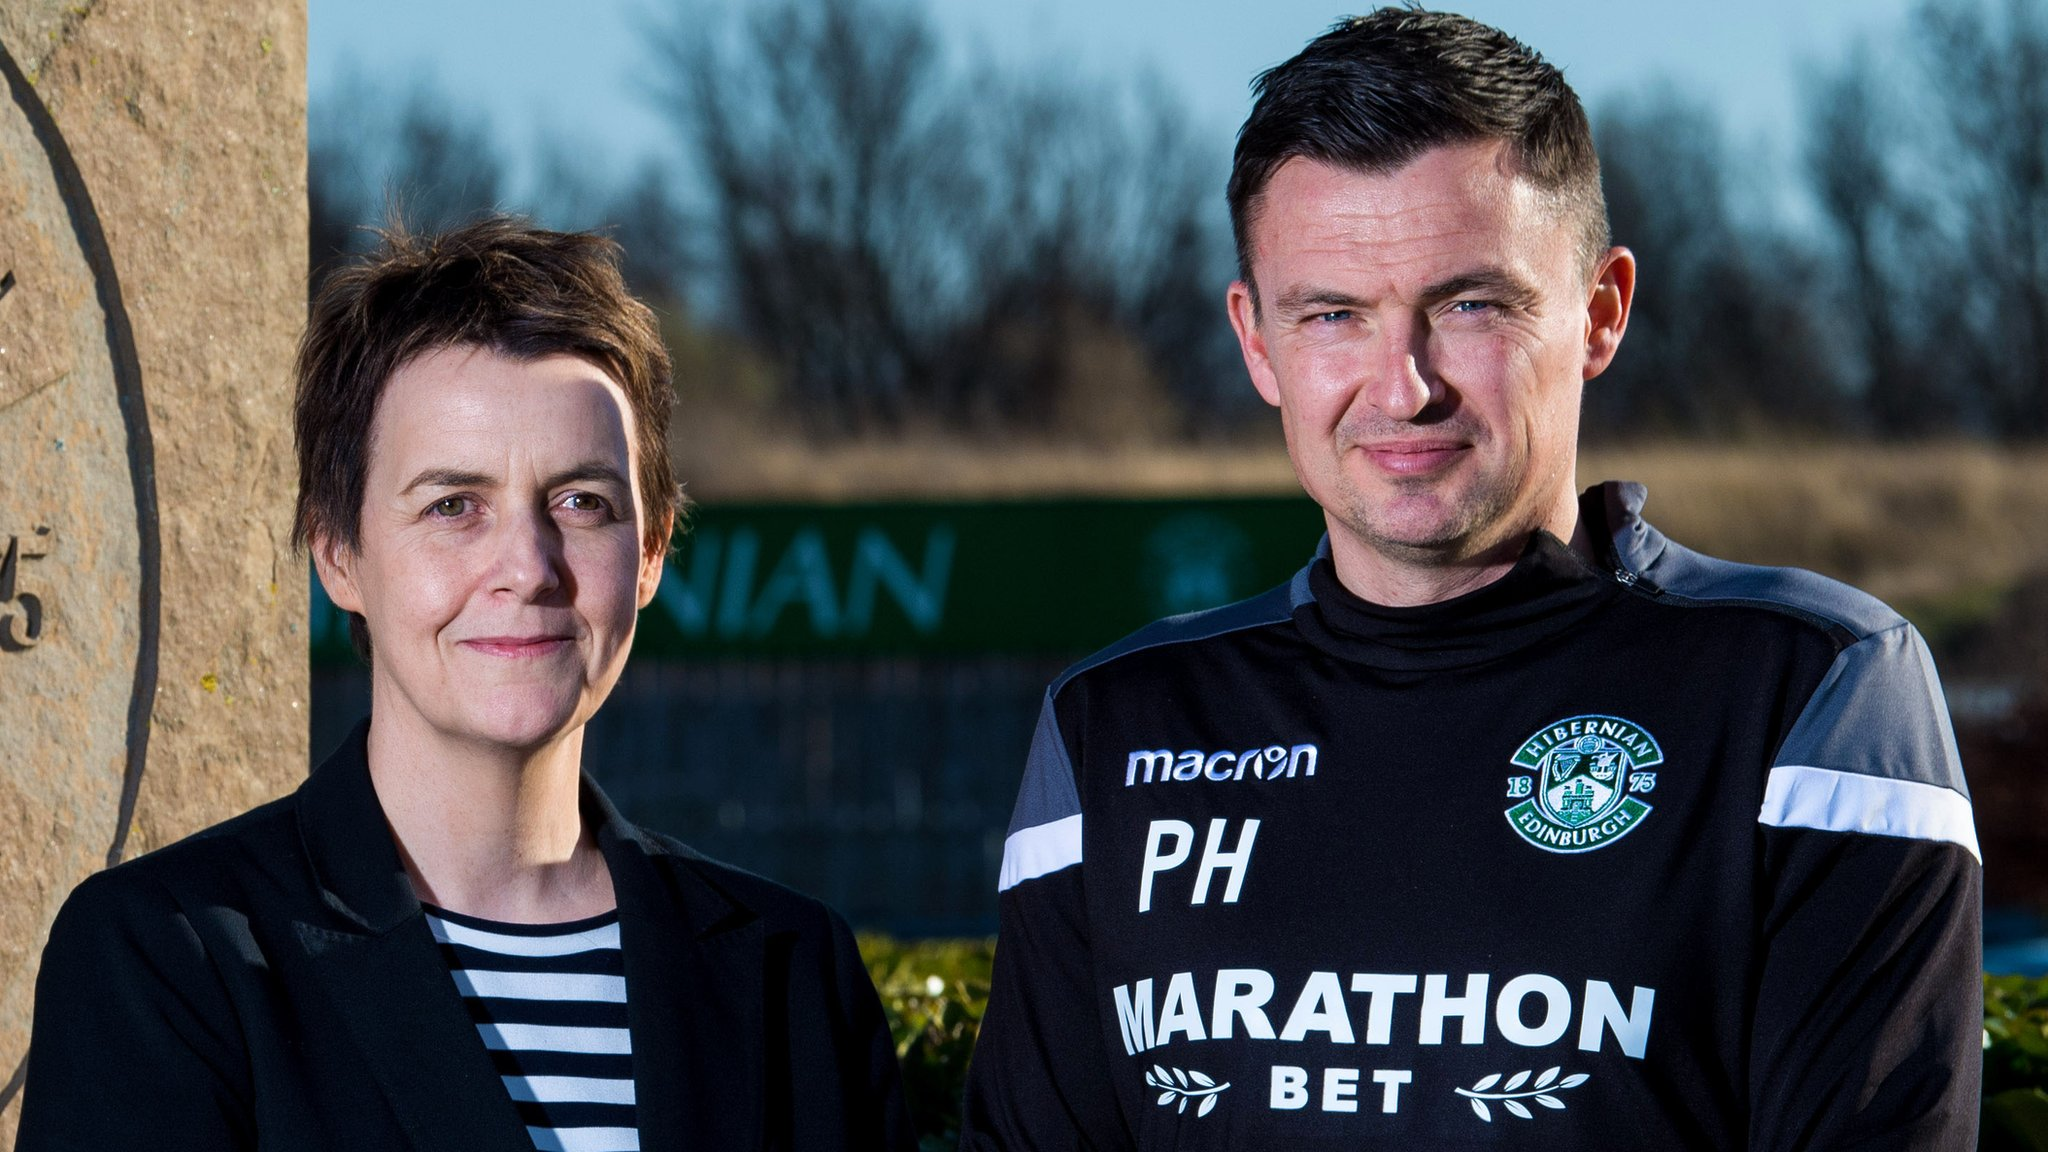 Hibernian: Paul Heckingbottom was only person offered job